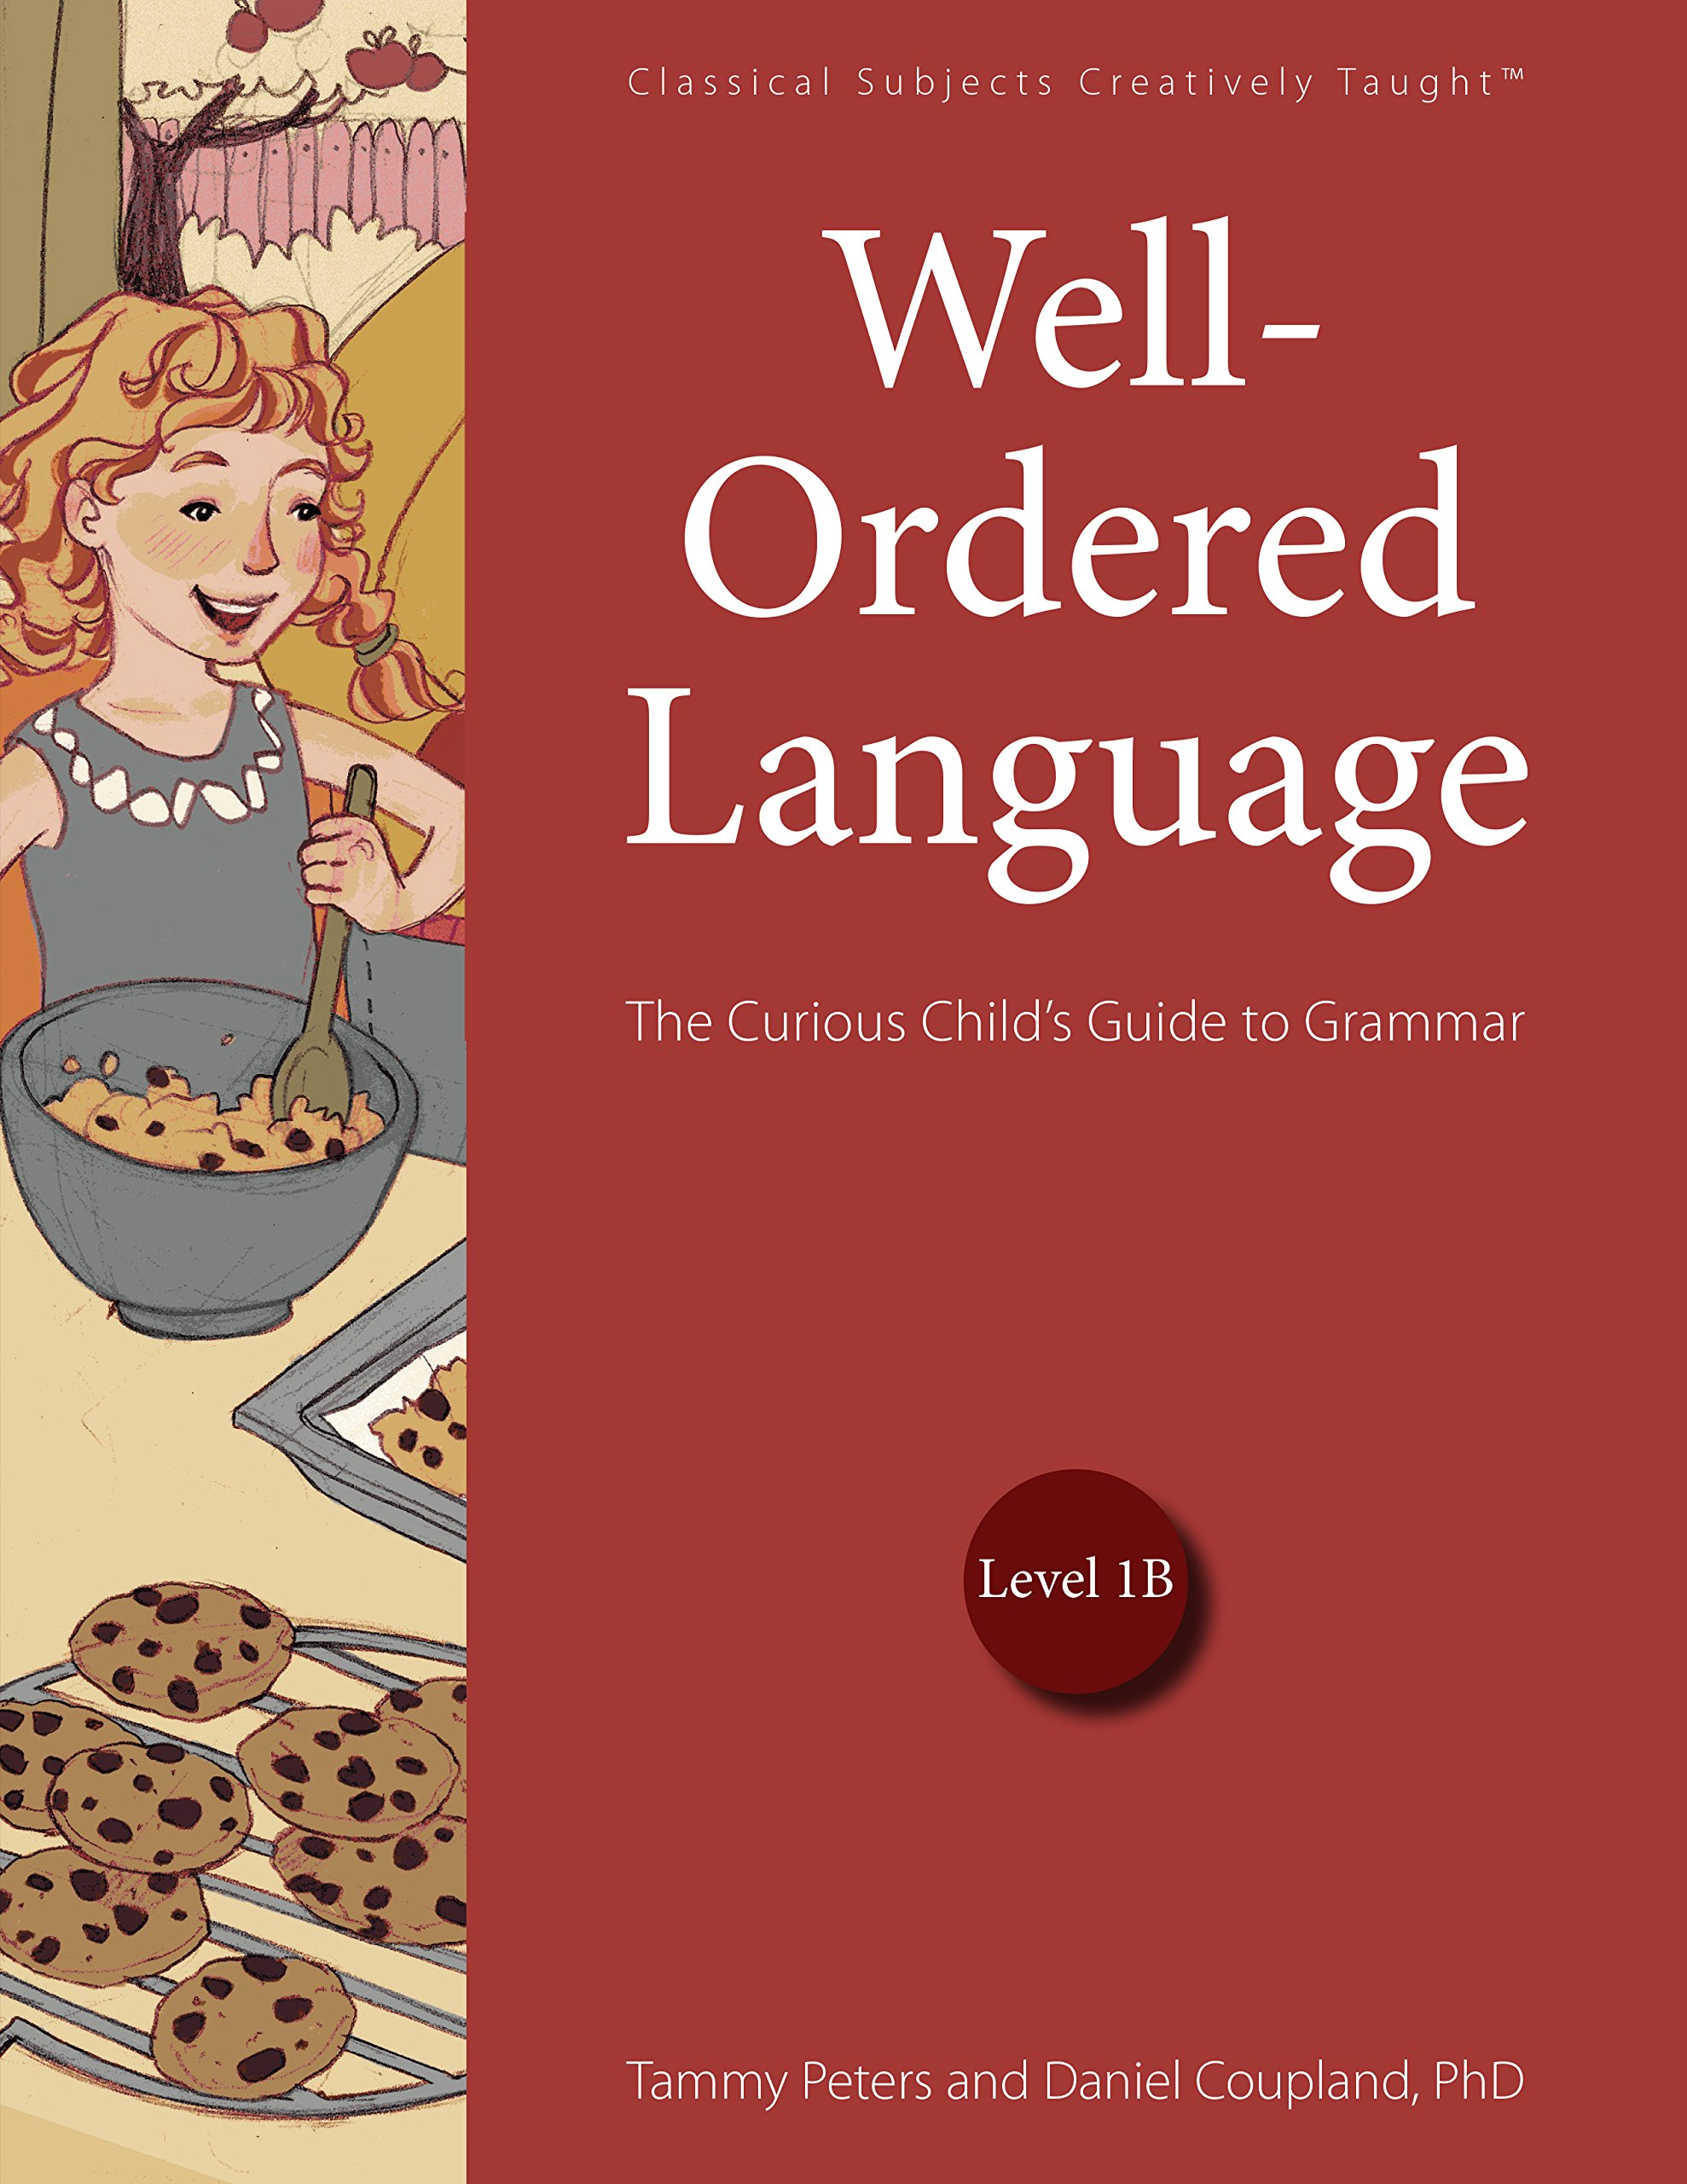 Well-Ordered Language Level 1B: The Curious Child's Guide to Grammar